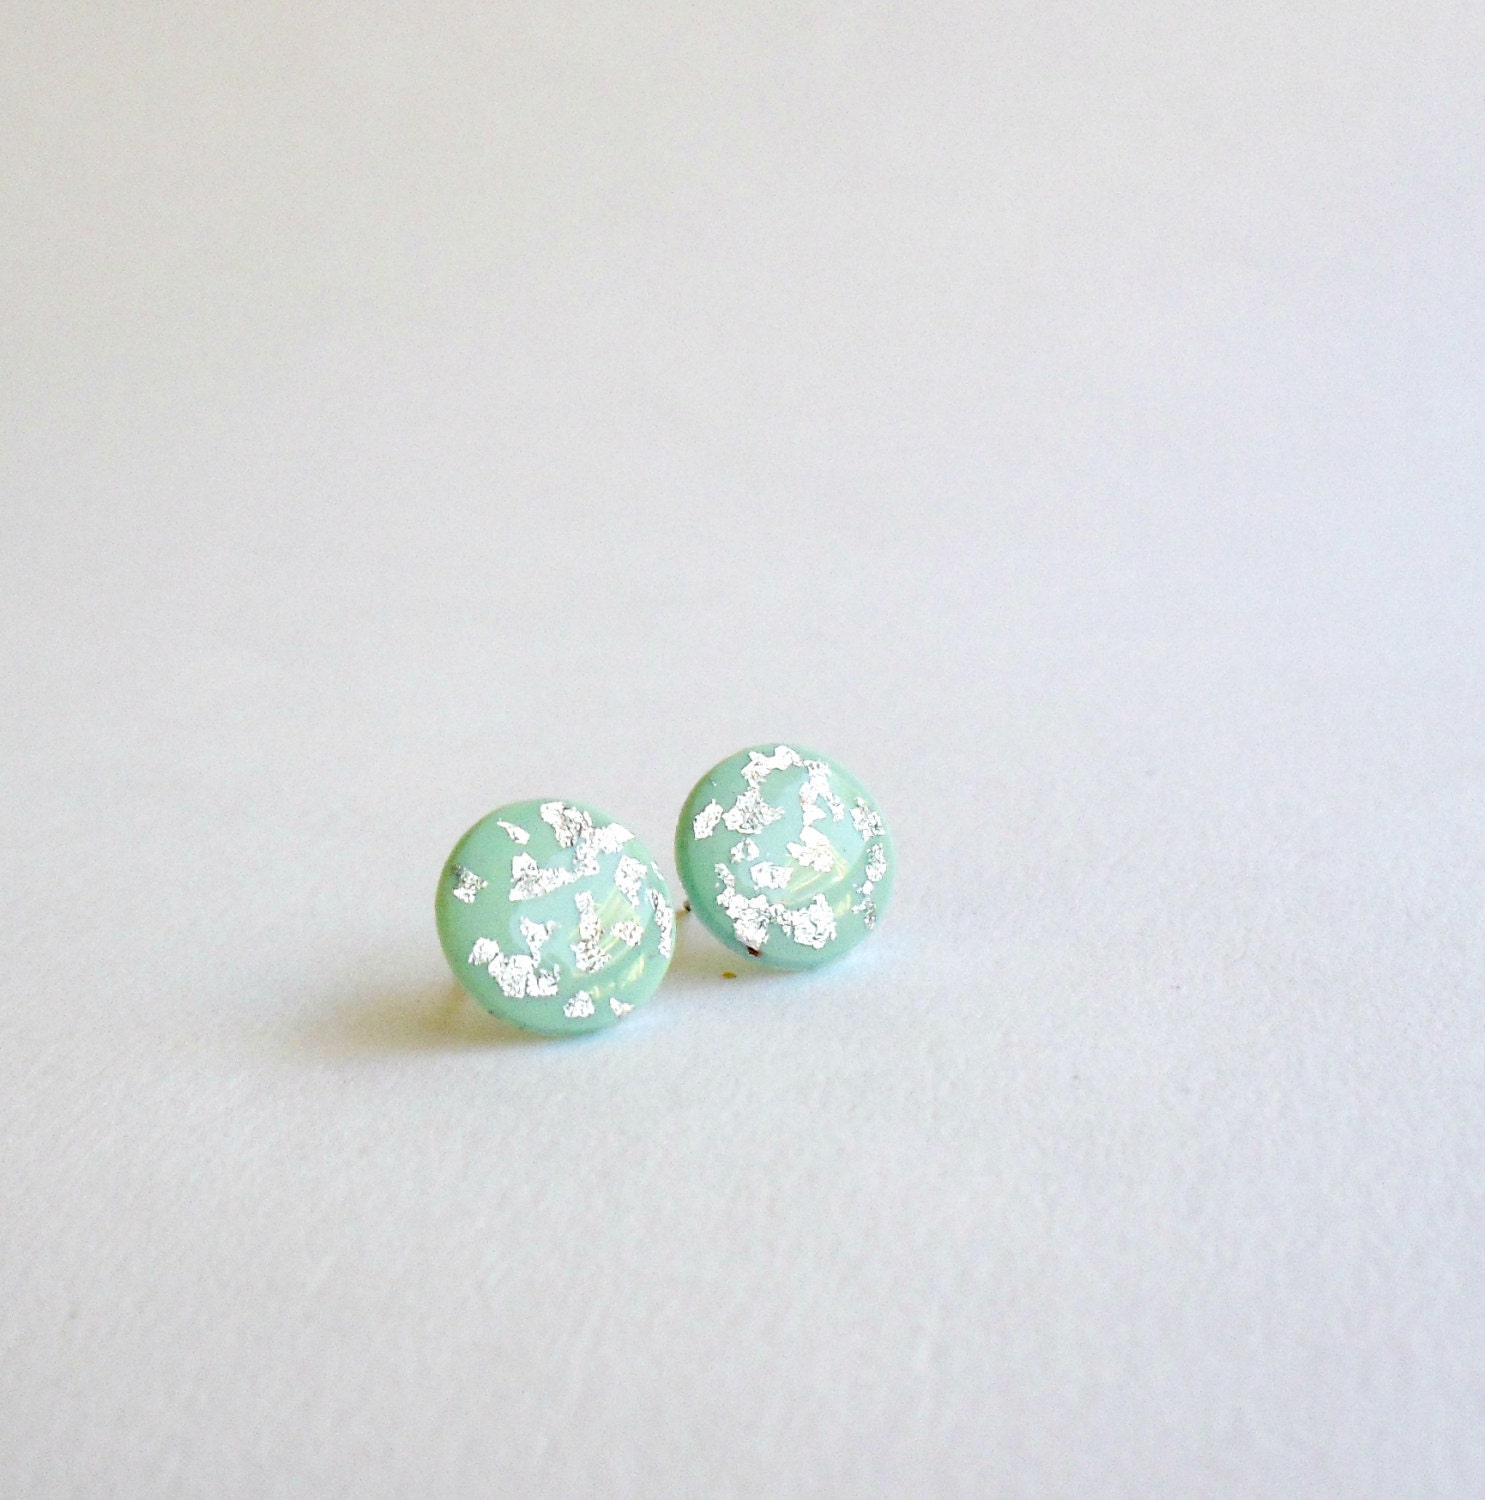 Mint green silver studs- Round post earrings- Elegant jewelry- polymer clay earrings - DivineDecadance